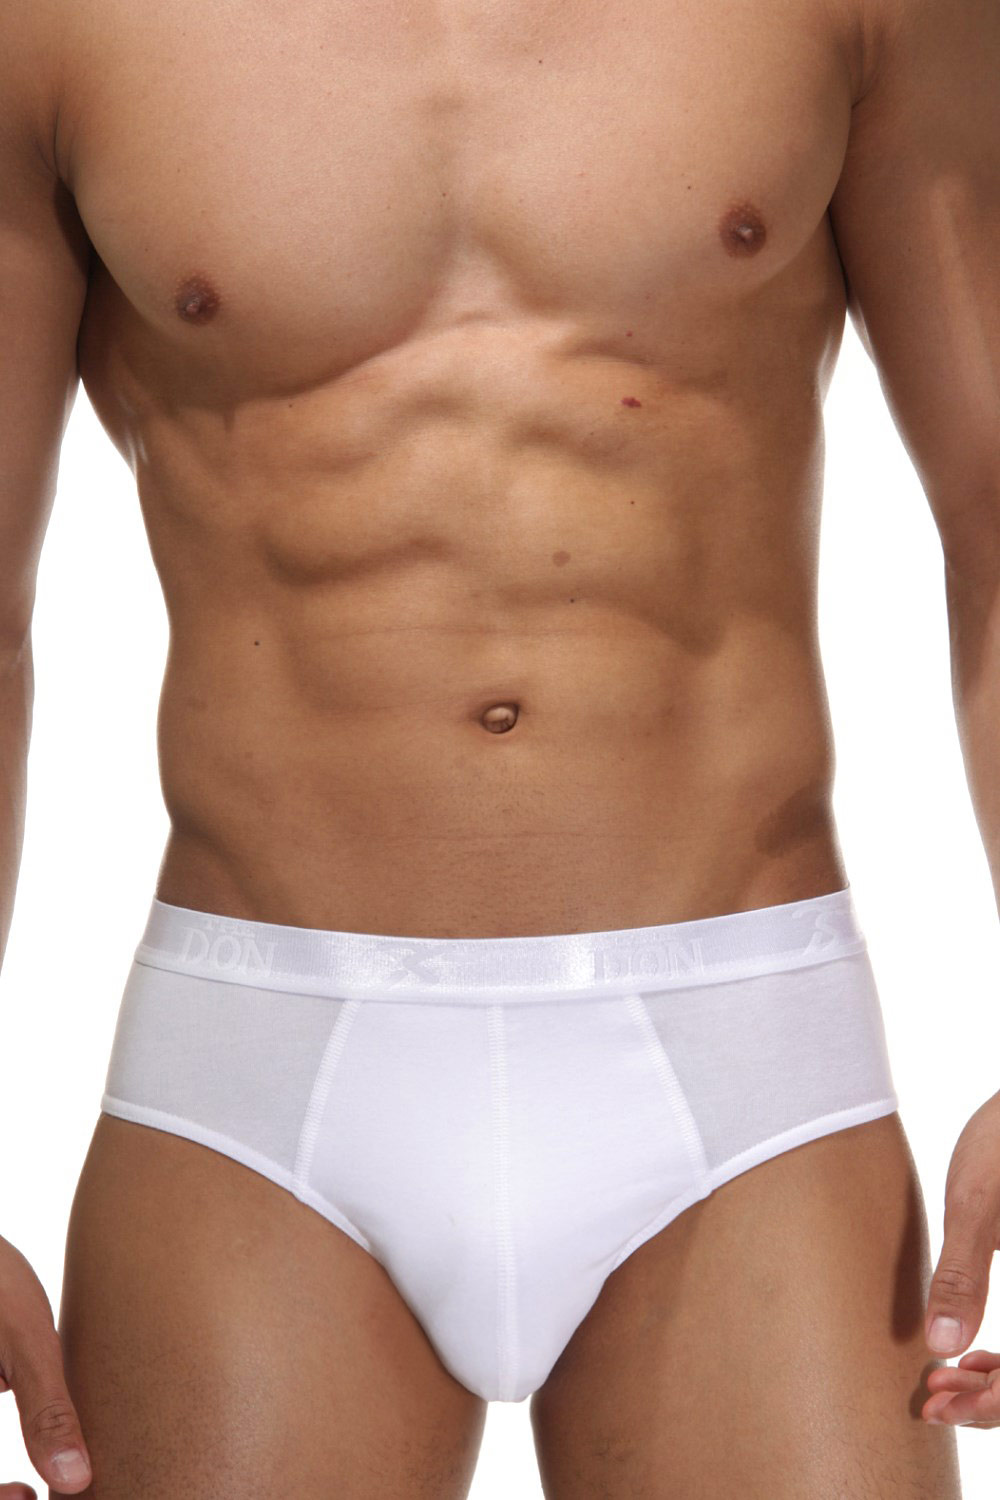 THE DON brief at oboy.com